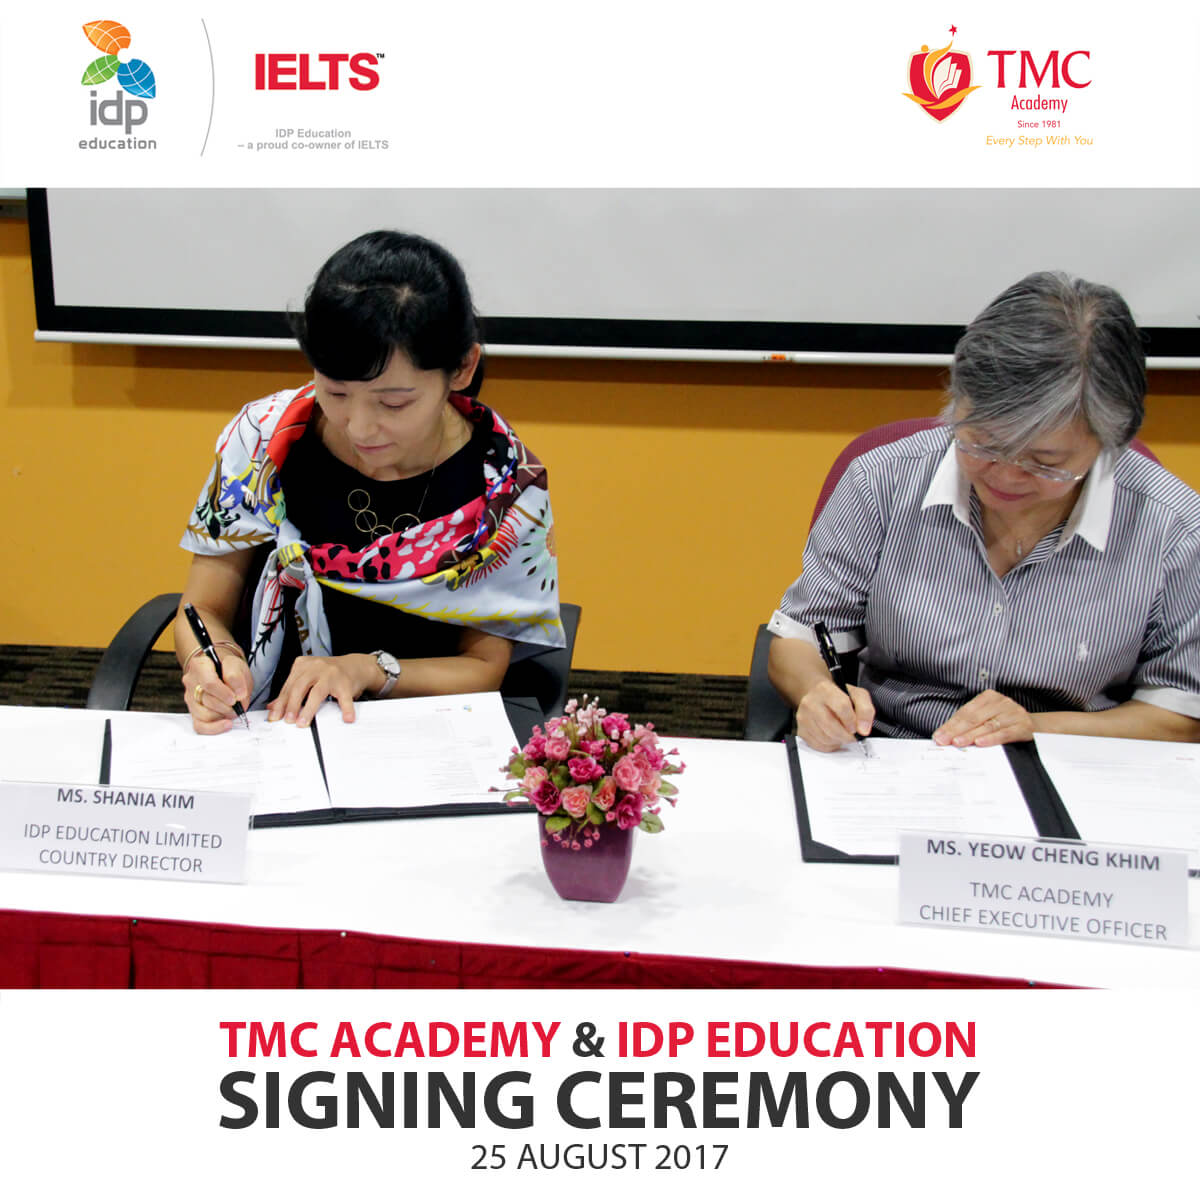 TMC & IDP Signing Ceremony Picture Signing the Collaboration